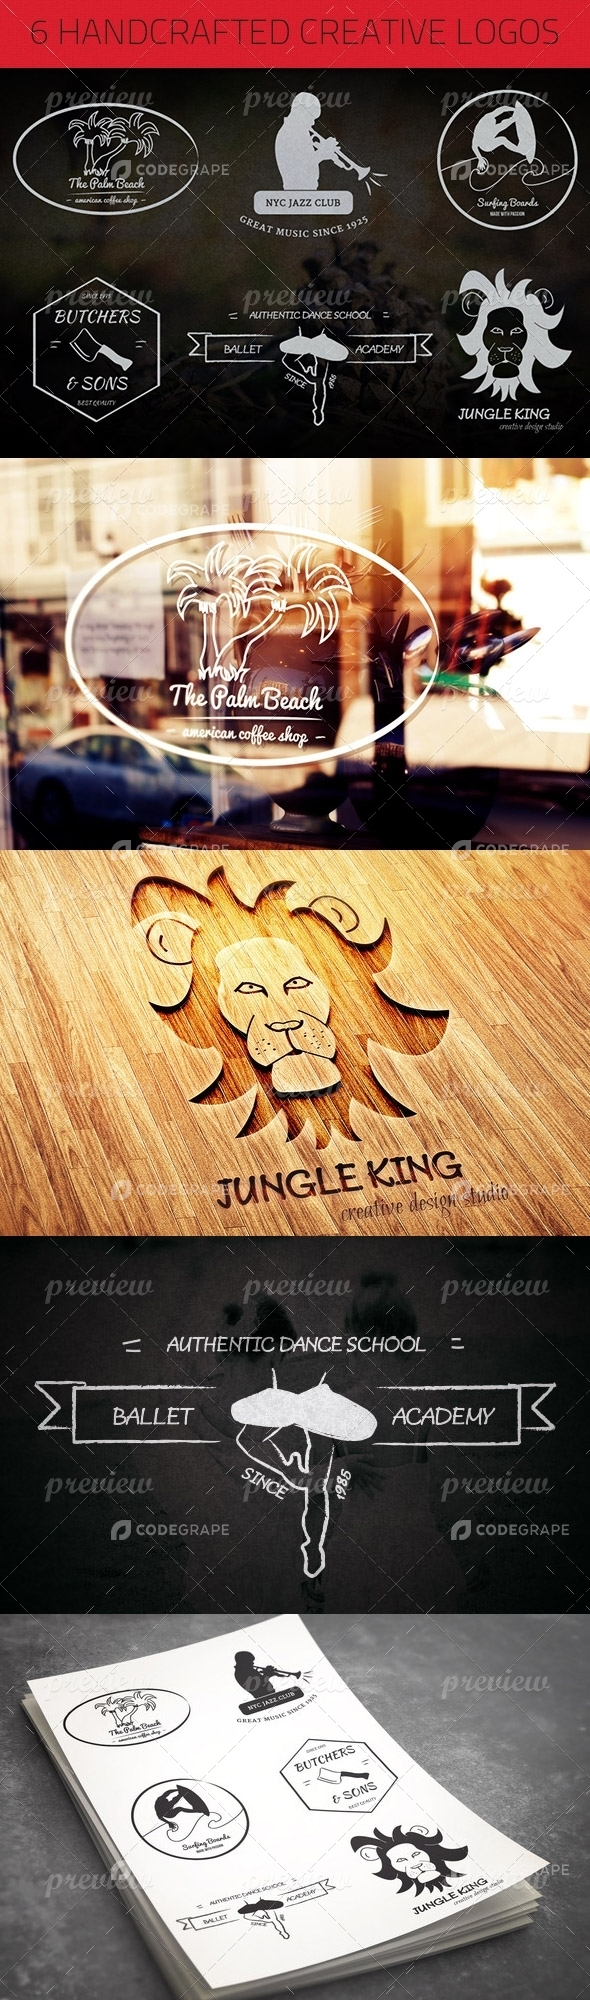 6 Handcrafted Creative Logos